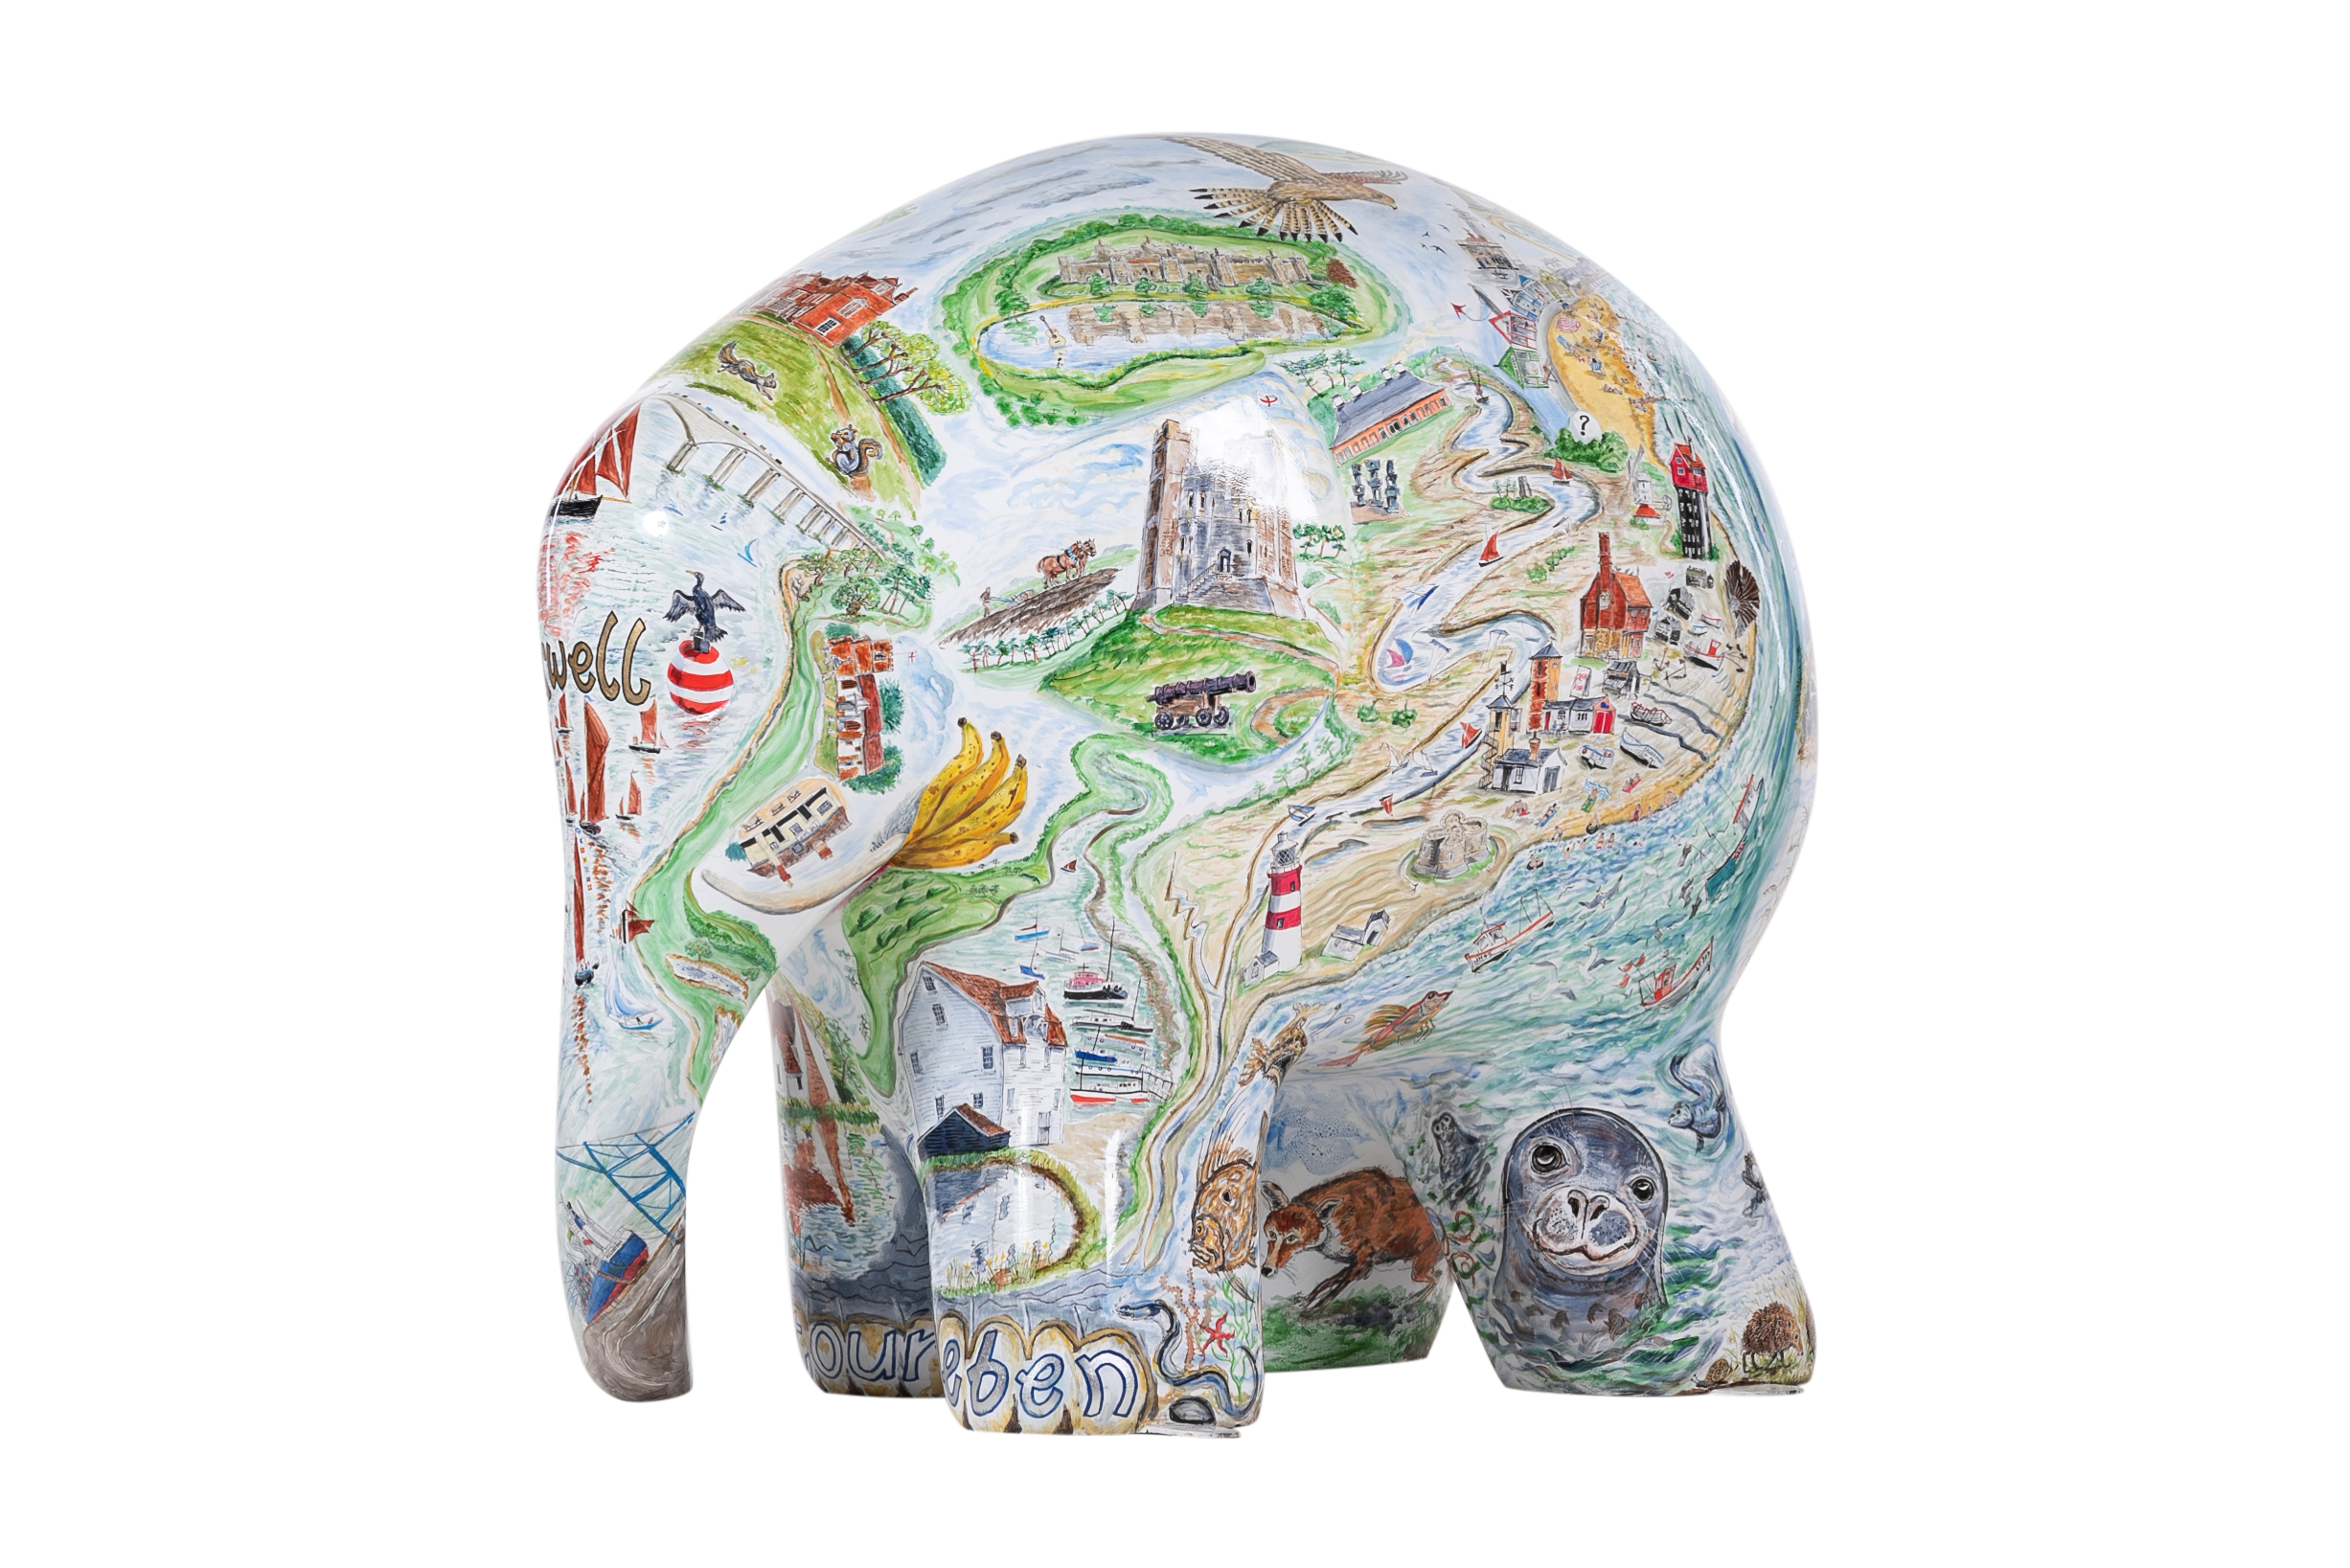 Suffolk Elephantasia by Glynn Thomas RE. Sponsored by Gotelee Solicitors.